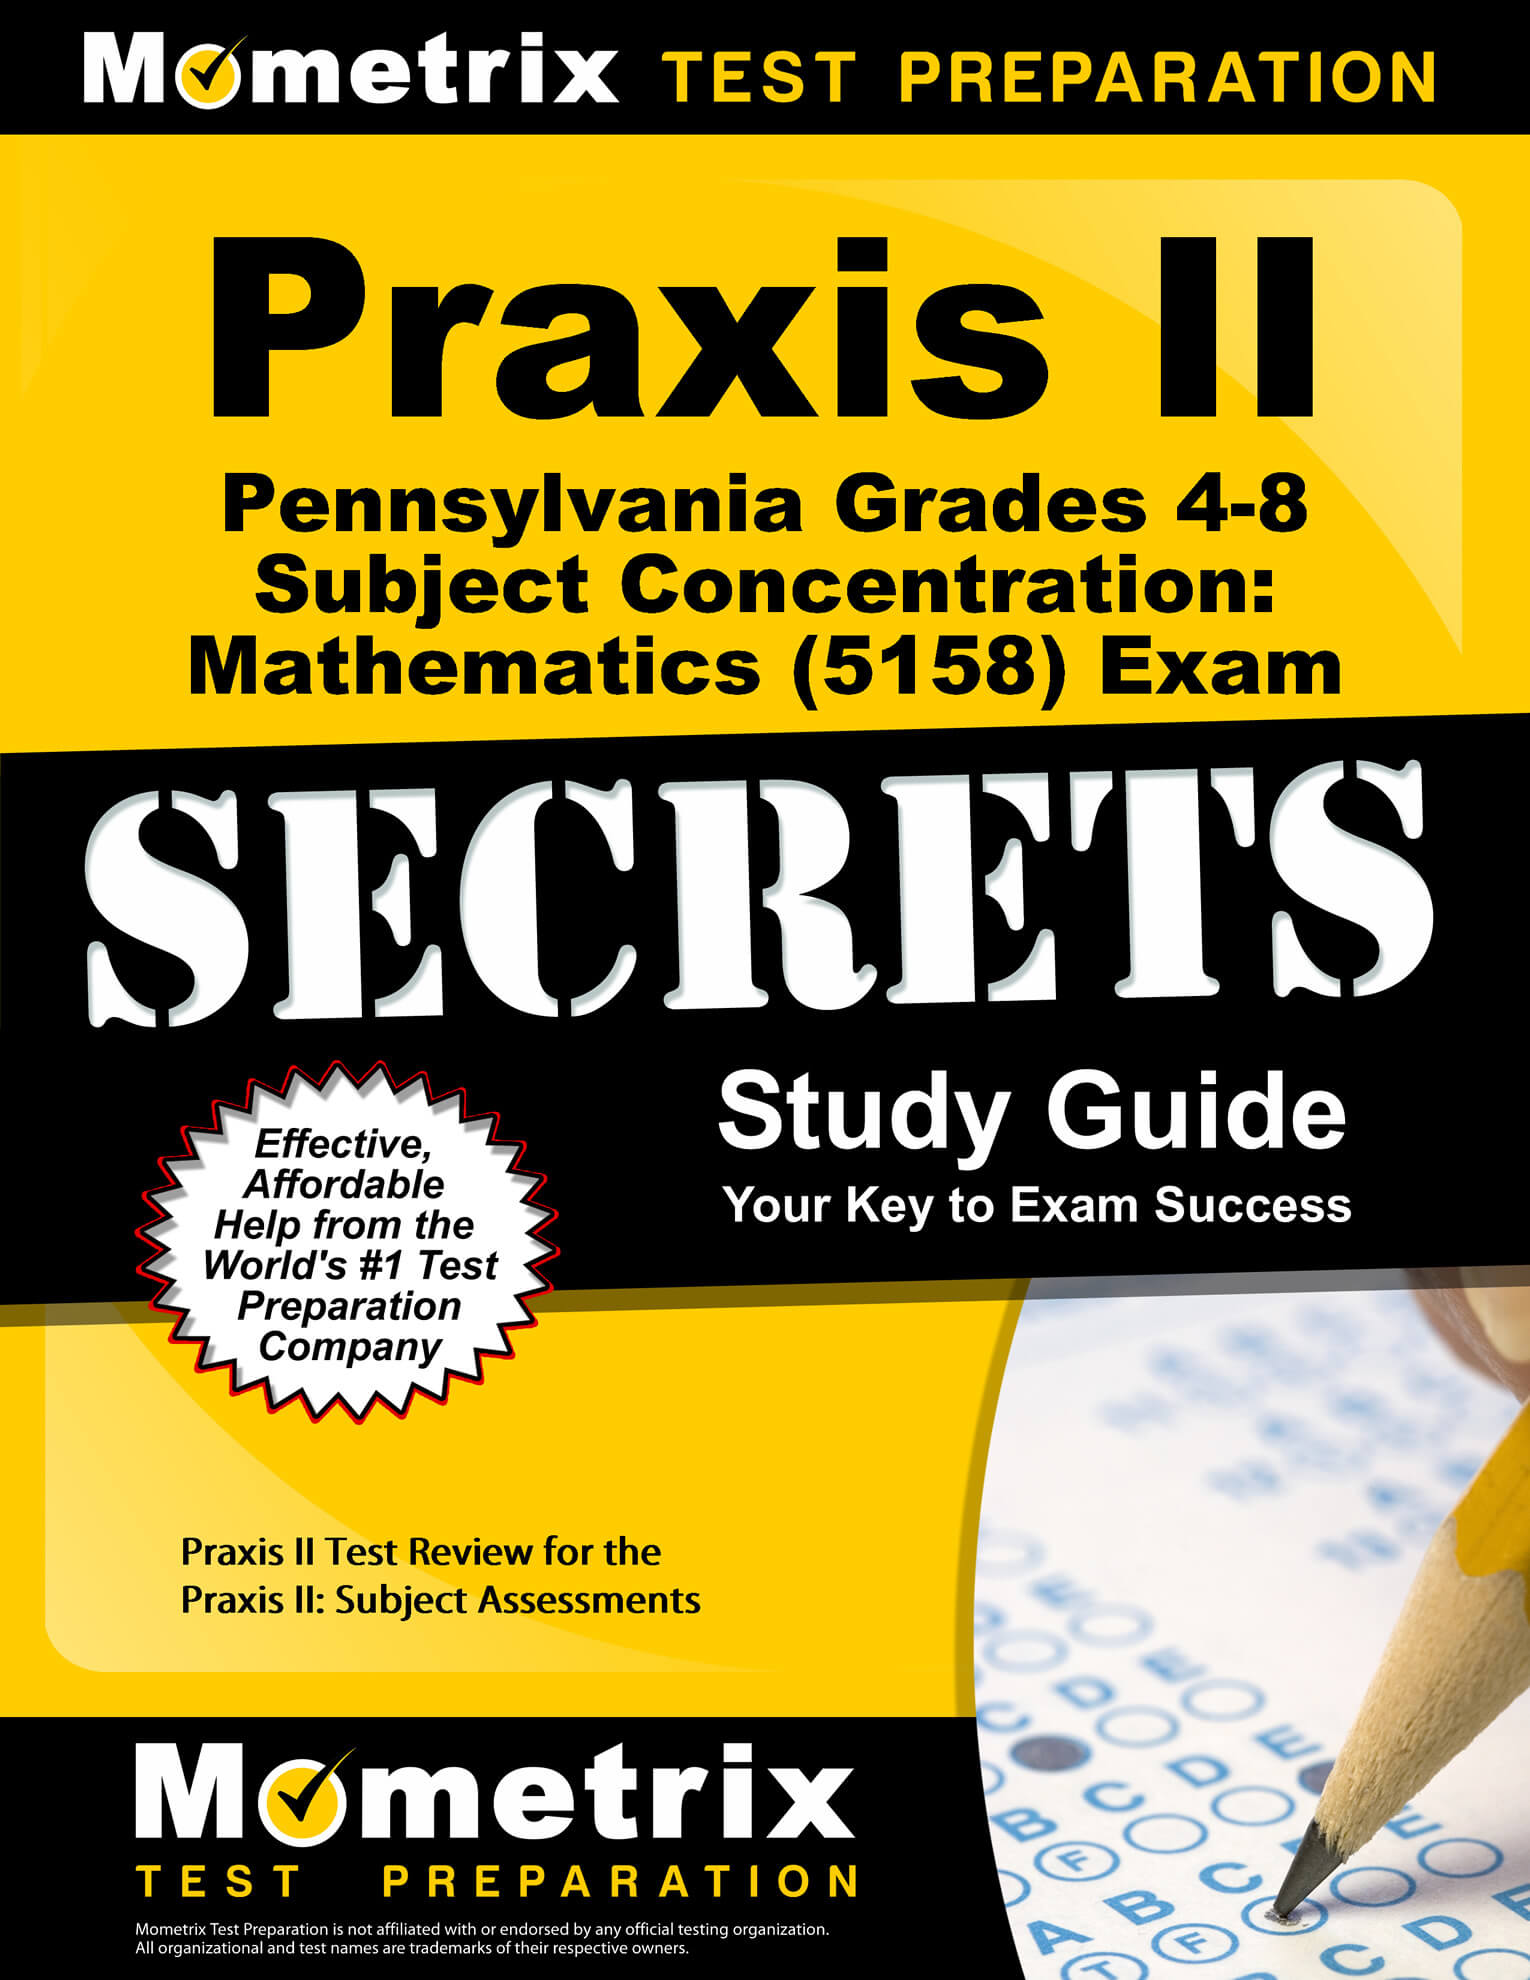 Praxis II Pennsylvania Grades 4-8 Subject Concentration: Mathematics Study Guide